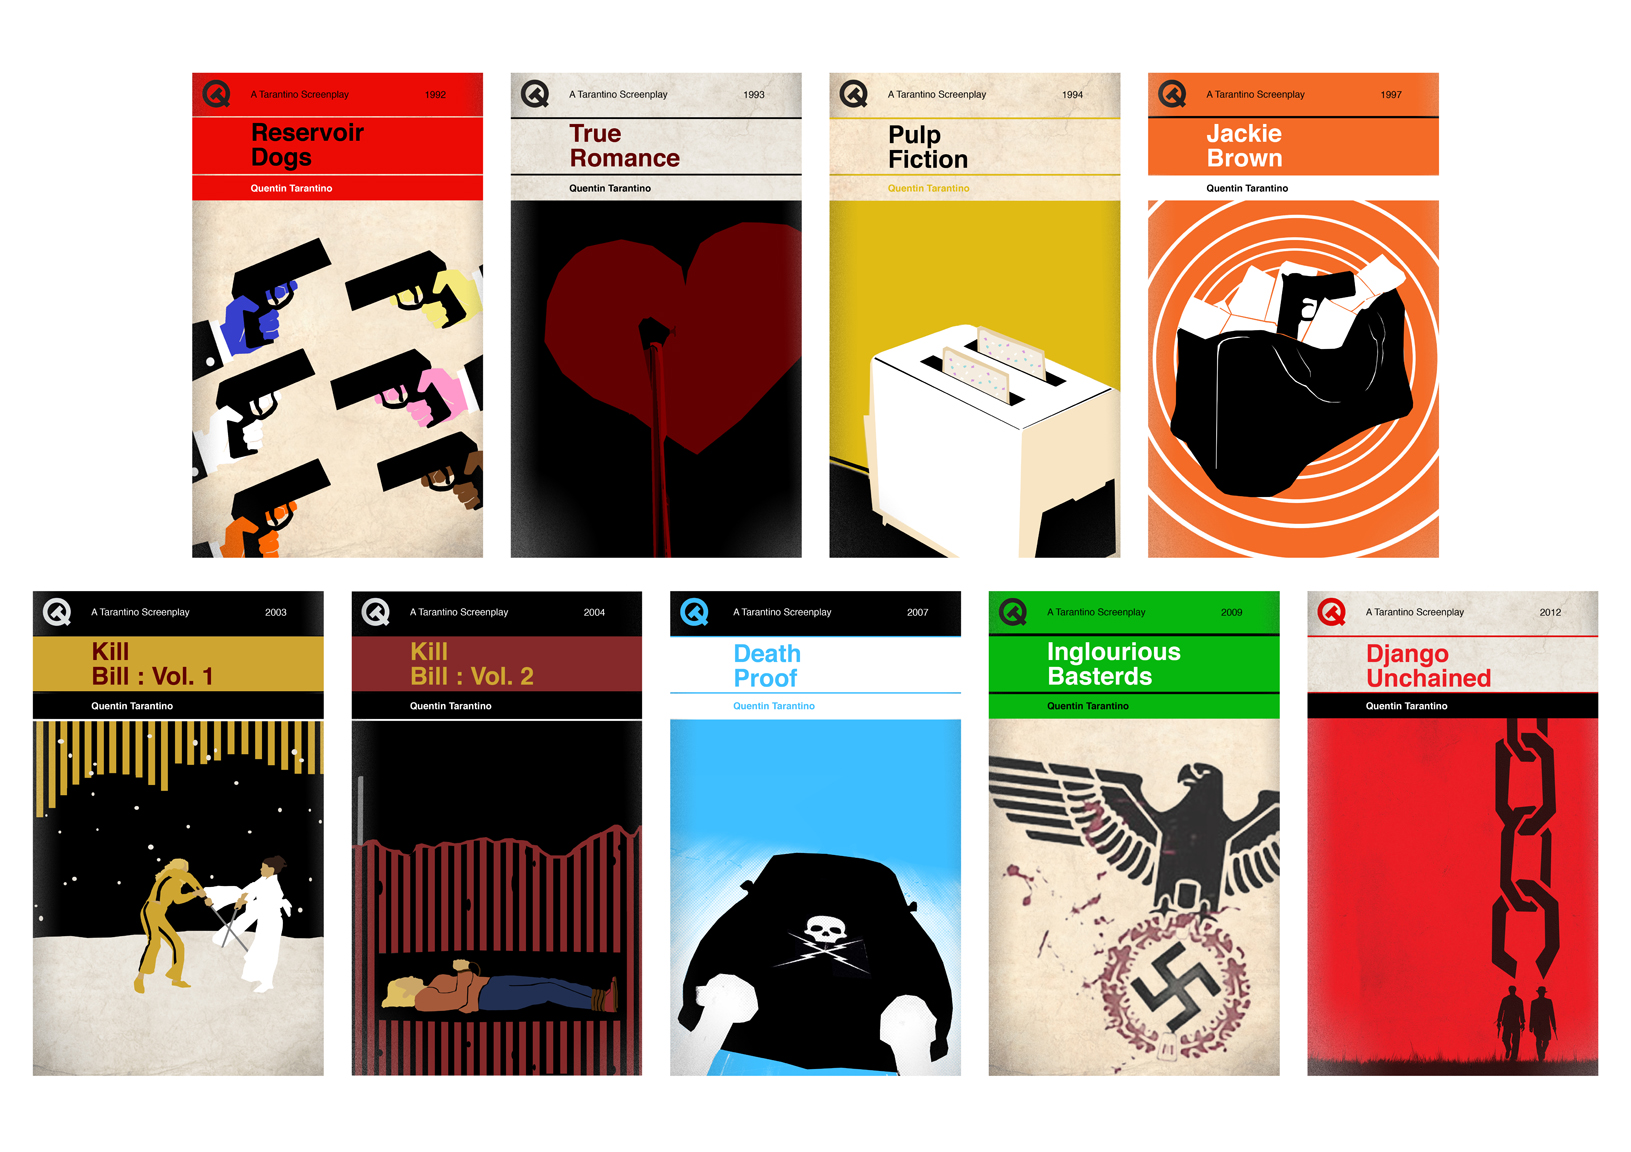 Vintage Style Book Cover : Quentin tarantino films re imagined as 'penguin style